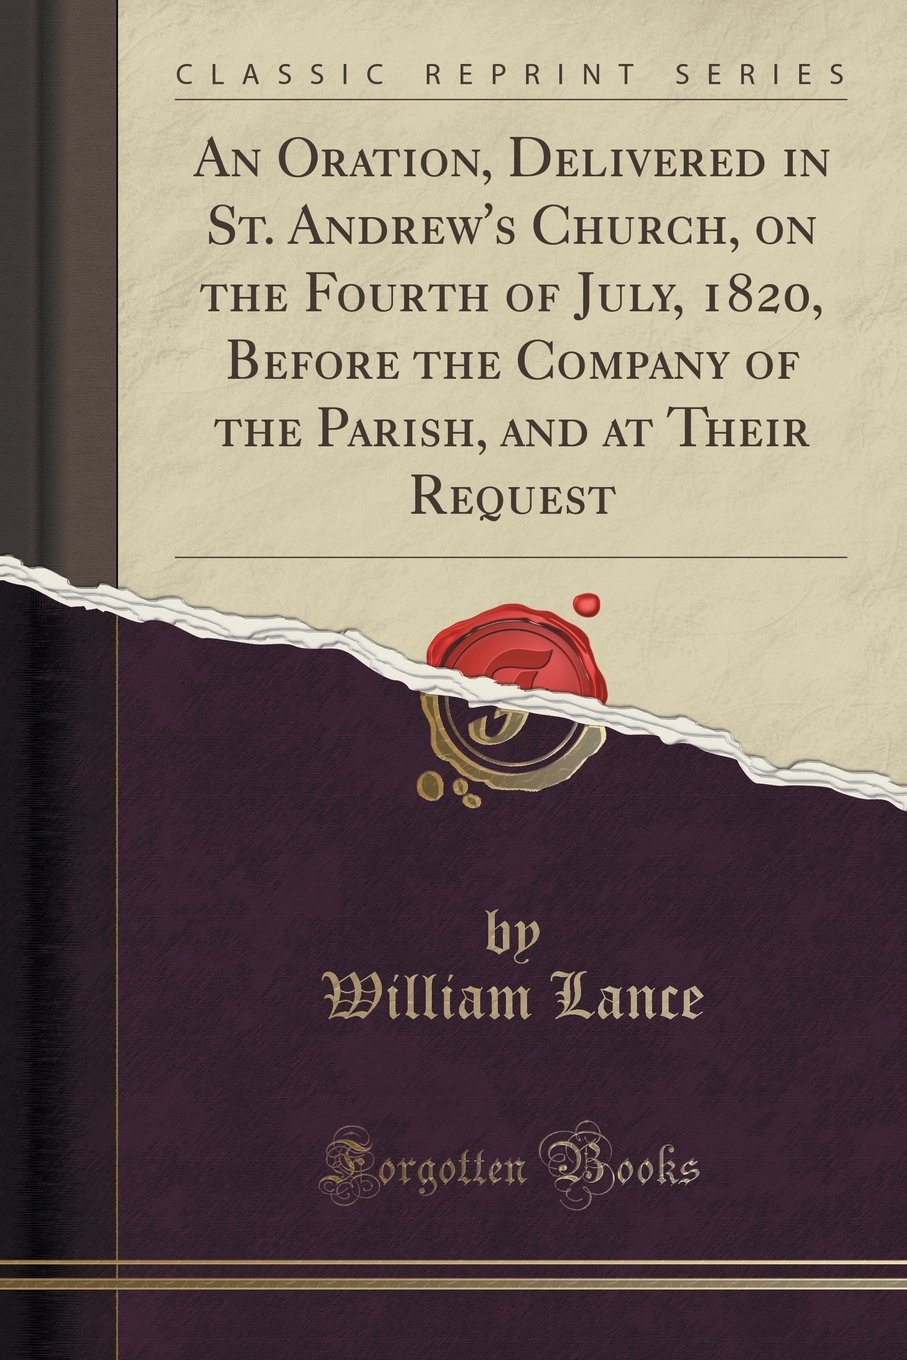 Download An Oration, Delivered in St. Andrew's Church, on the Fourth of July, 1820, Before the Company of the Parish, and at Their Request (Classic Reprint) PDF